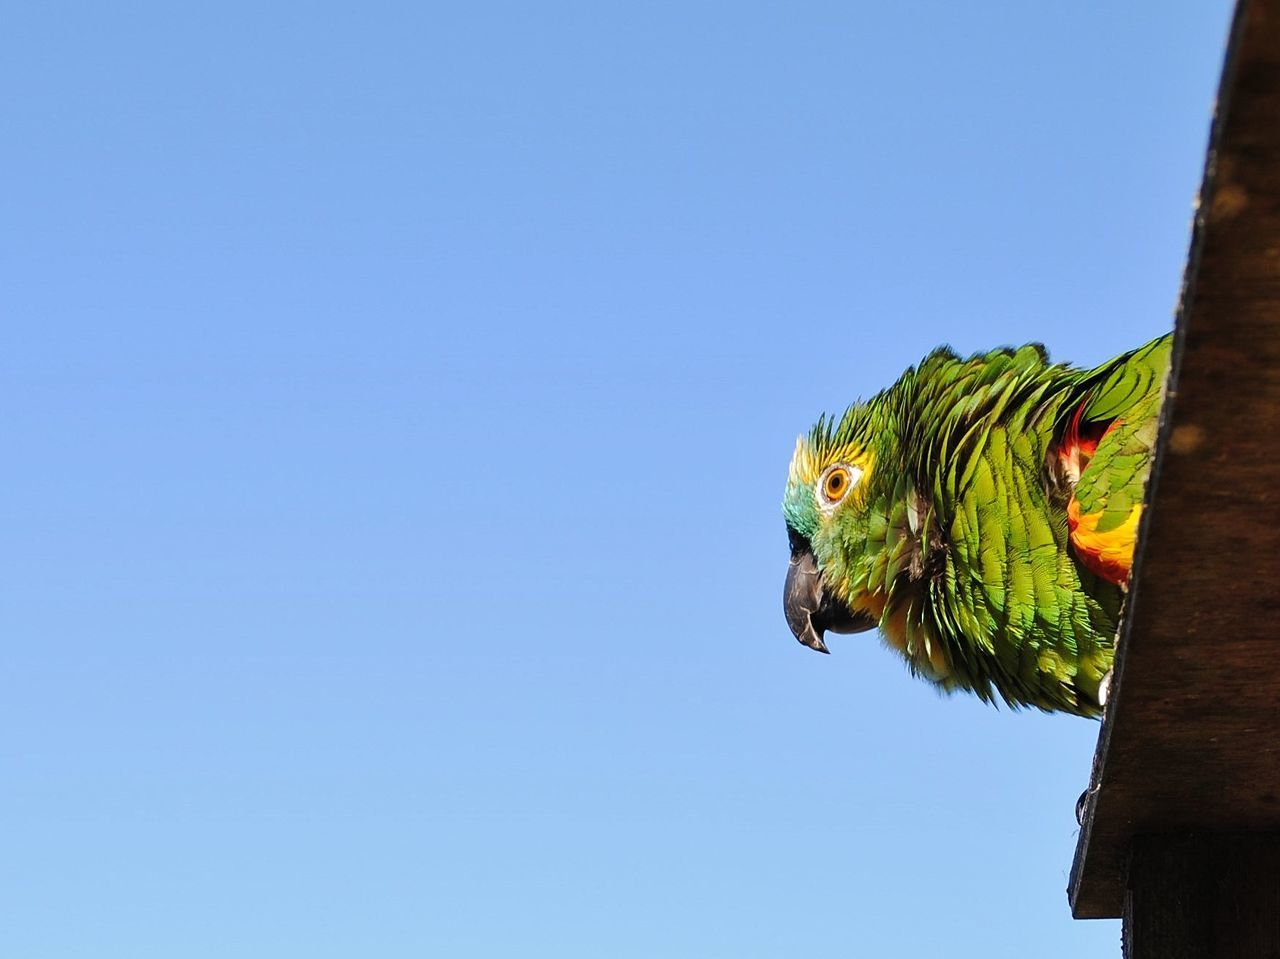 one animal, animal, animal themes, vertebrate, bird, copy space, animal wildlife, parrot, clear sky, animals in the wild, blue, low angle view, sky, no people, day, nature, perching, outdoors, green color, mammal, animal head, rainbow lorikeet